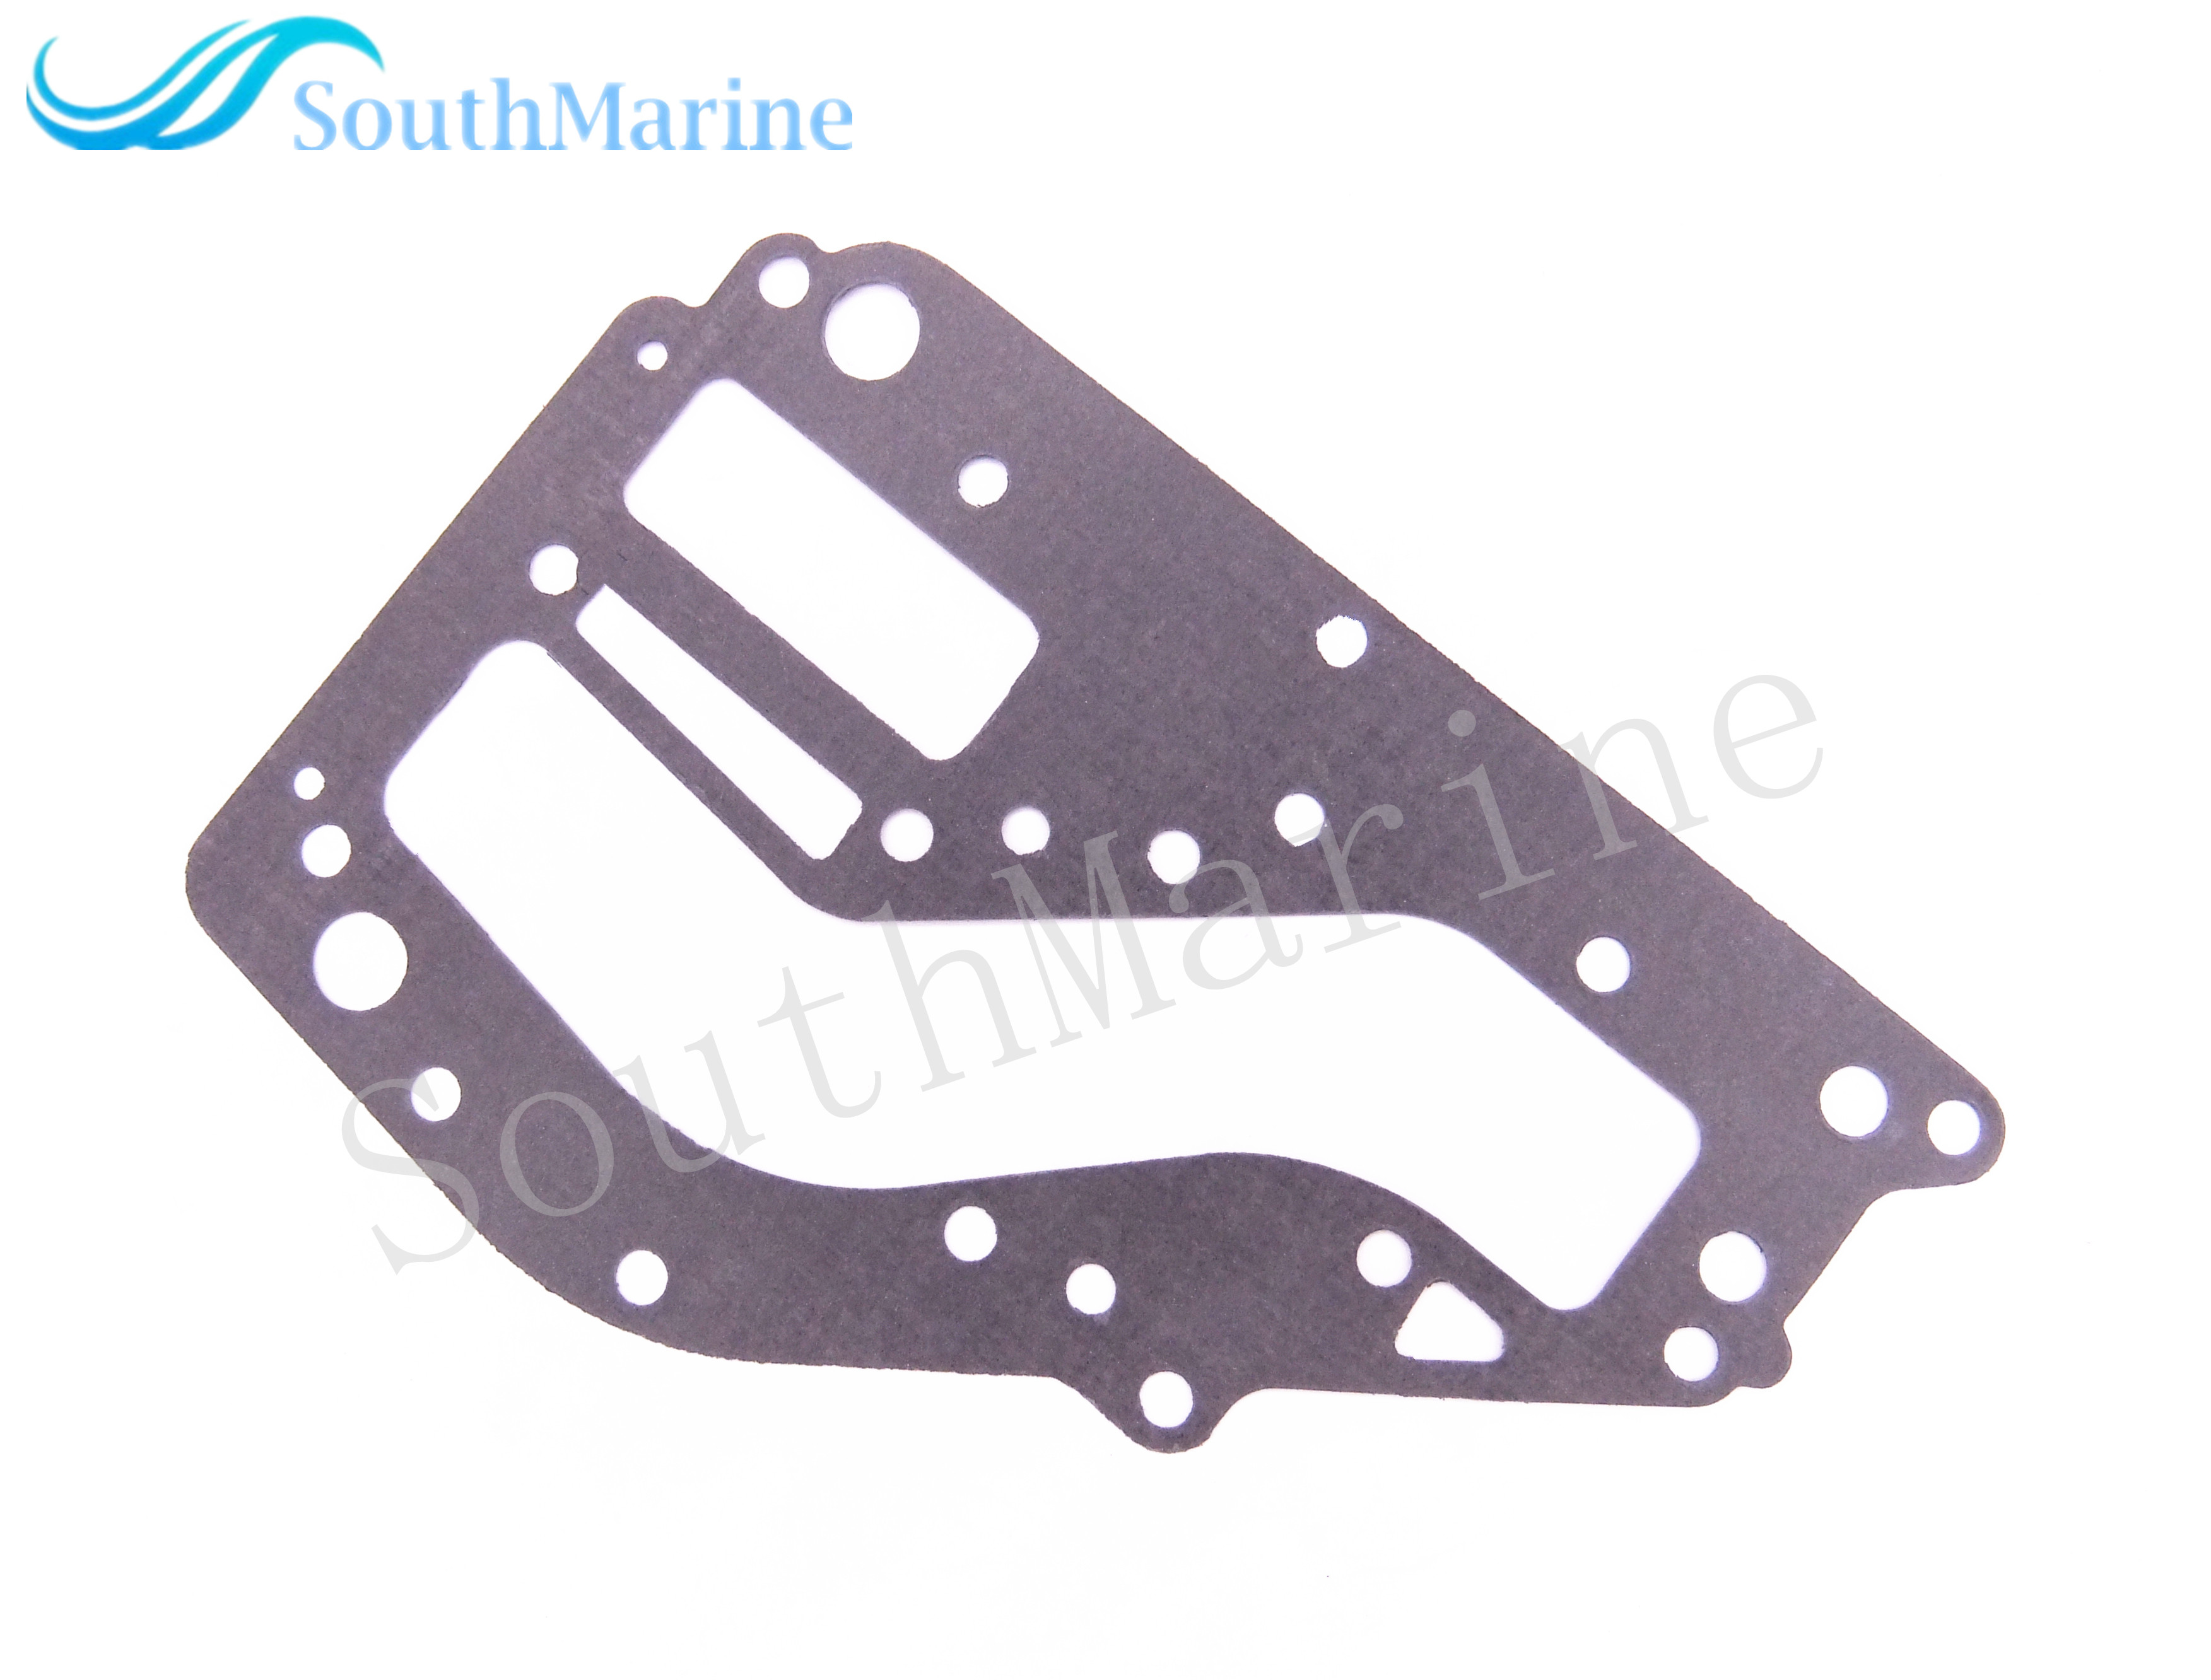 Outboard Engine Boat Motor 6K8-41122-A1 Exhaust Inner Cover Gasket for Yamaha 2-Stroke 25HP 30HP Free Shipping